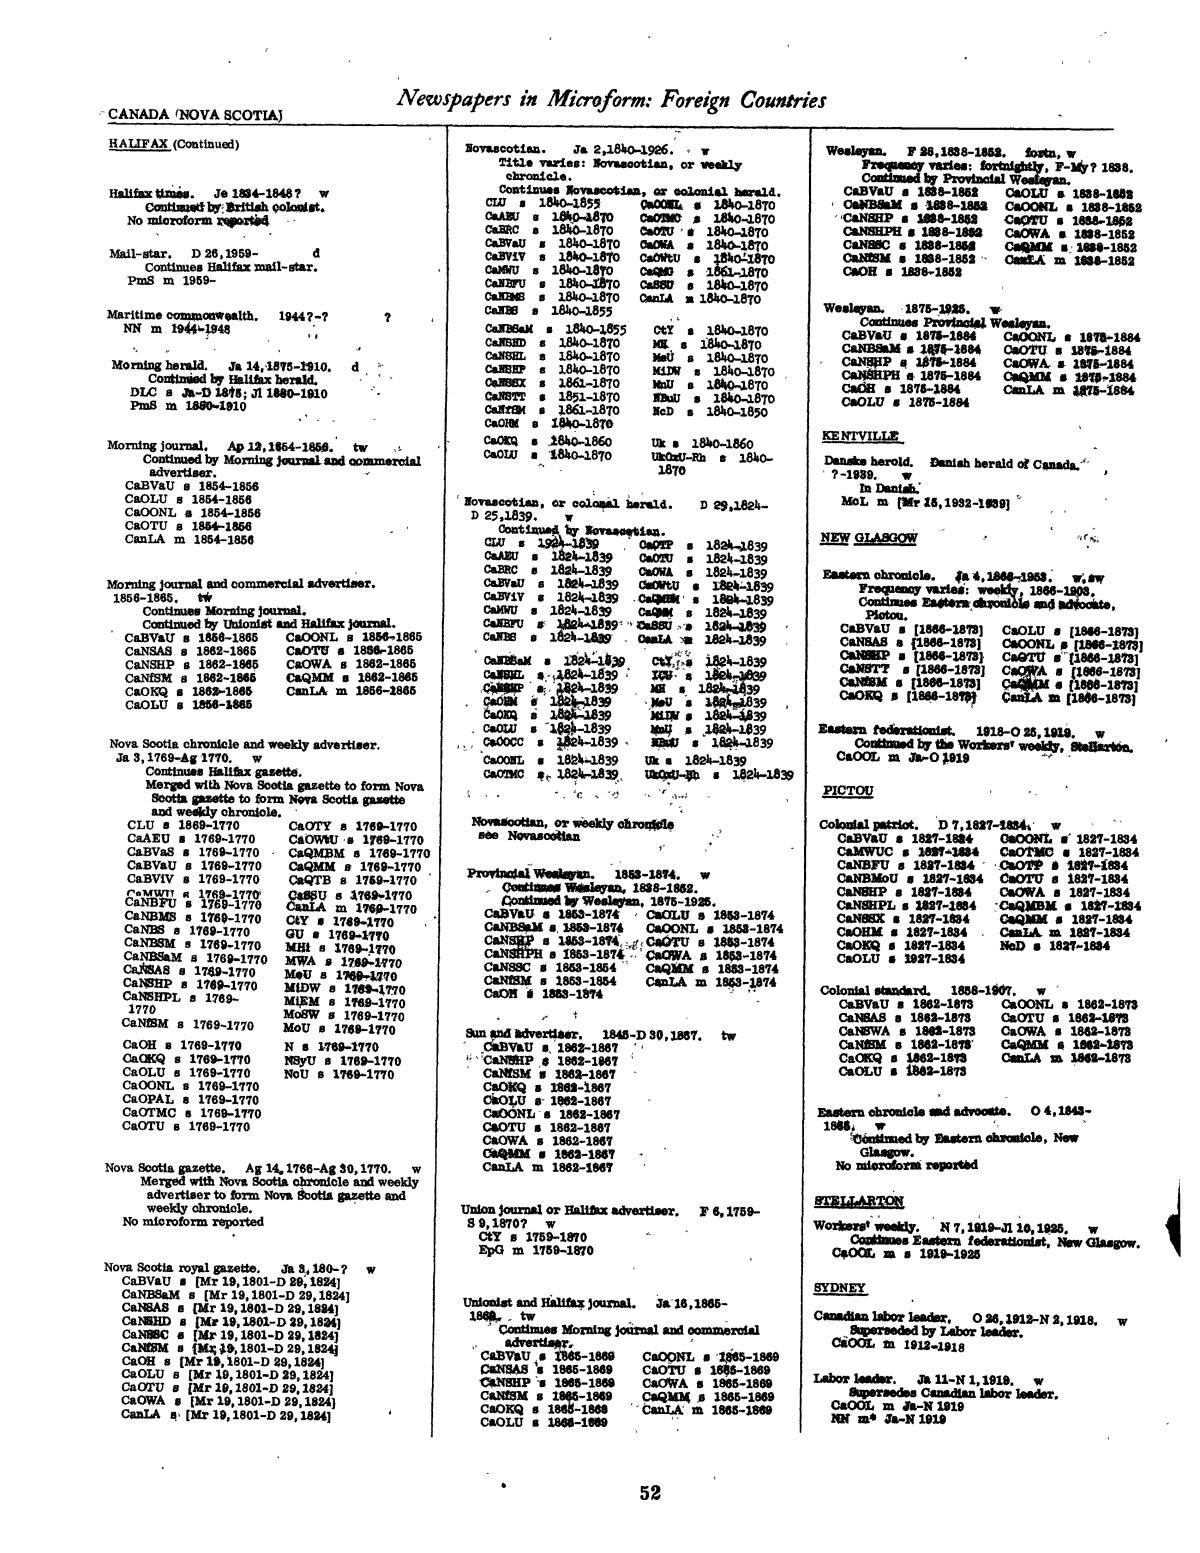 Library of Congress Catalogs: Newspapers in Microform, Foreign Countries, 1948-1983                                                                                                      52